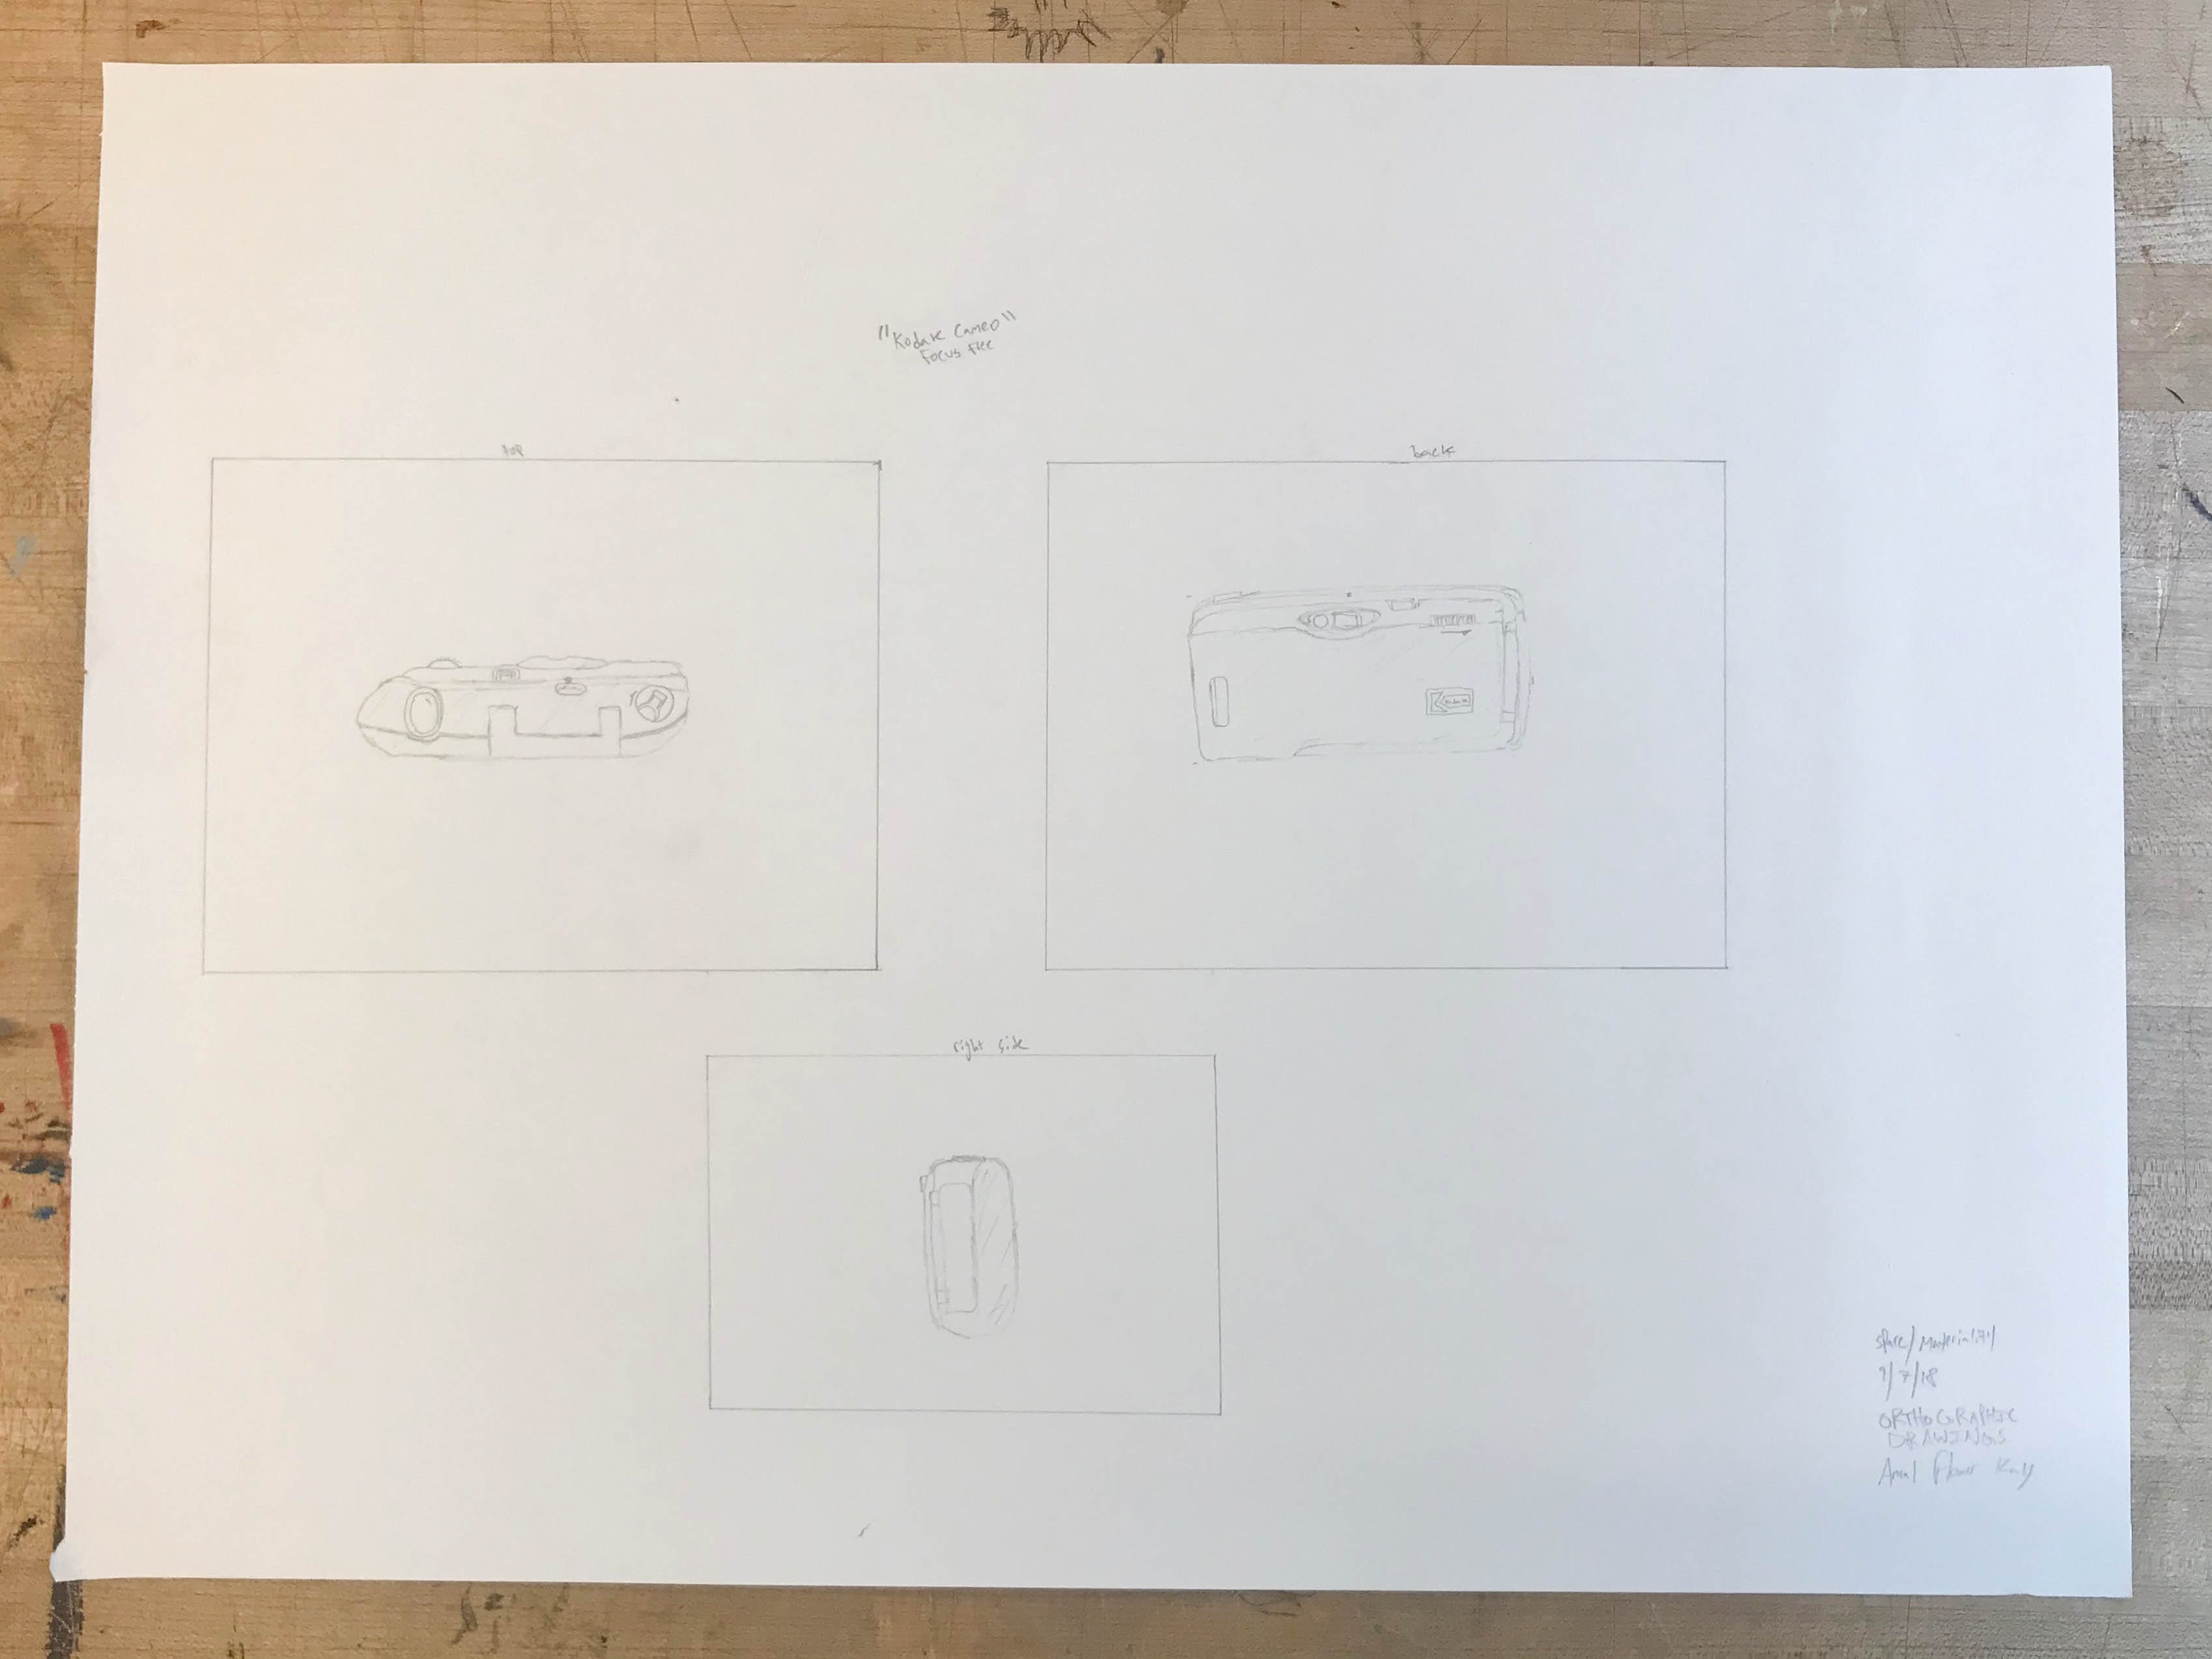 Orthographic Drawings: Reflection